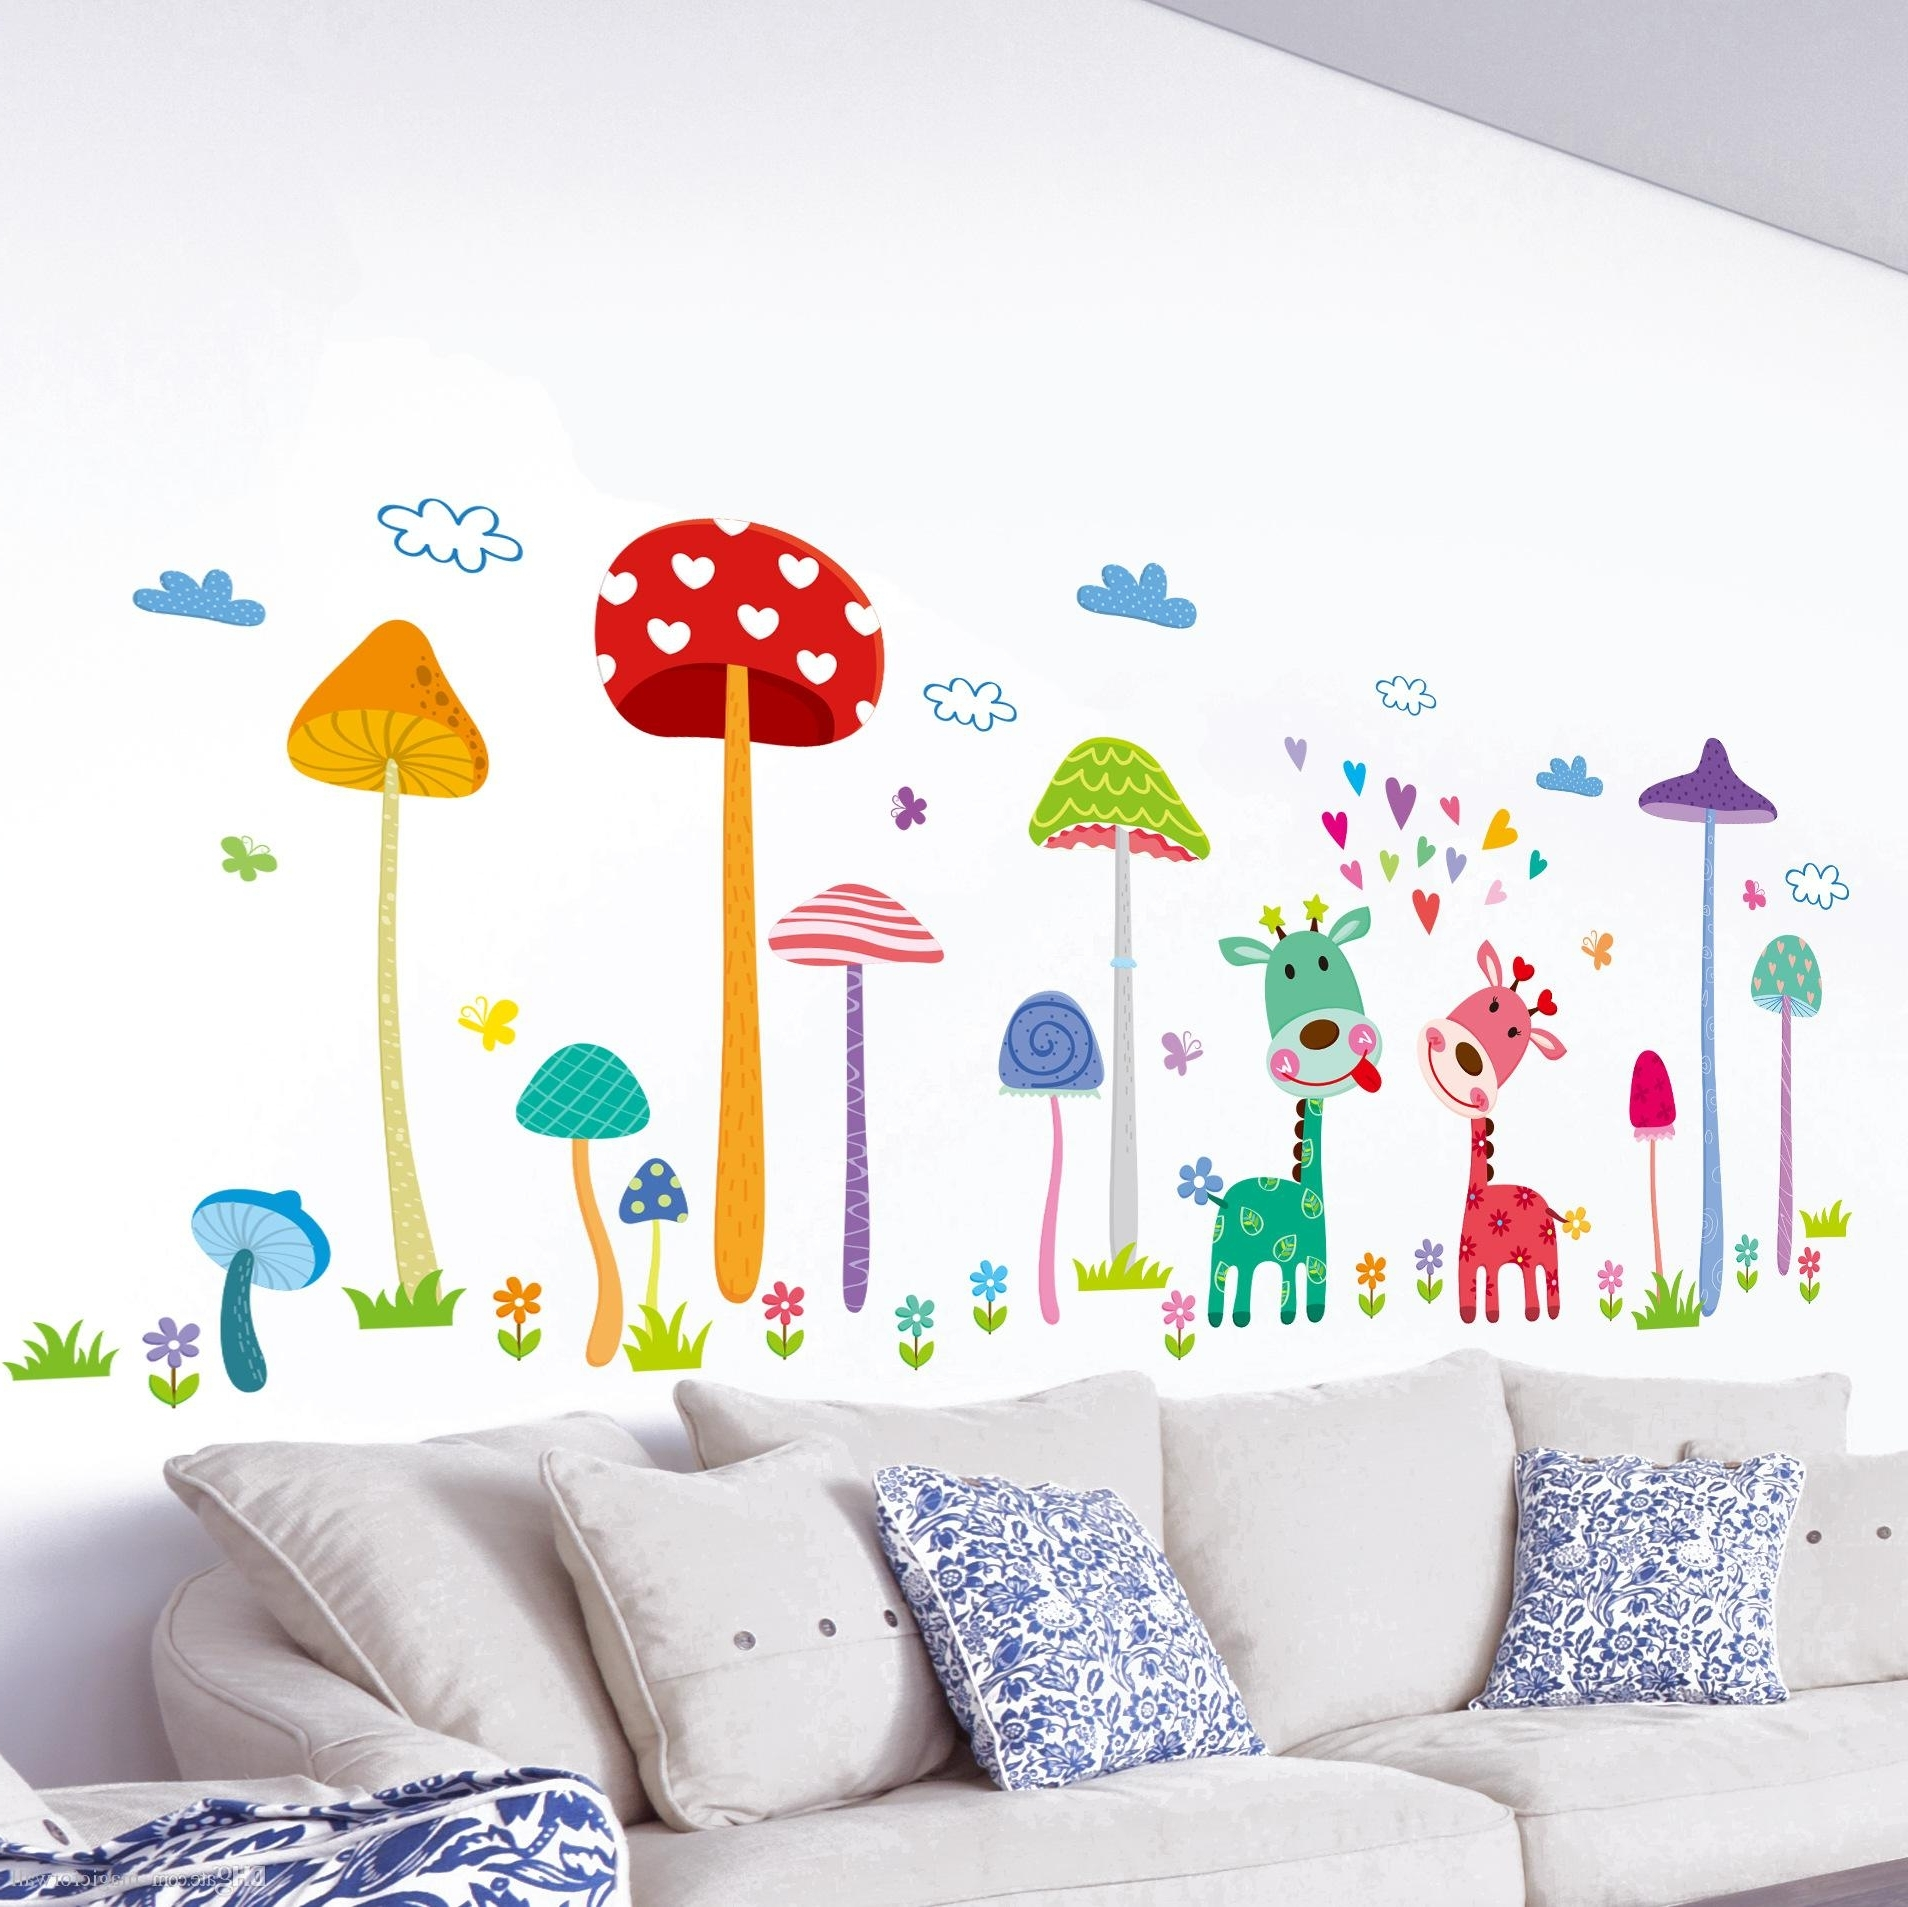 Best And Newest Wall Art Decors For Forest Mushroom Deer Animals Home Wall Art Mural Decor Kids Babies (View 5 of 15)